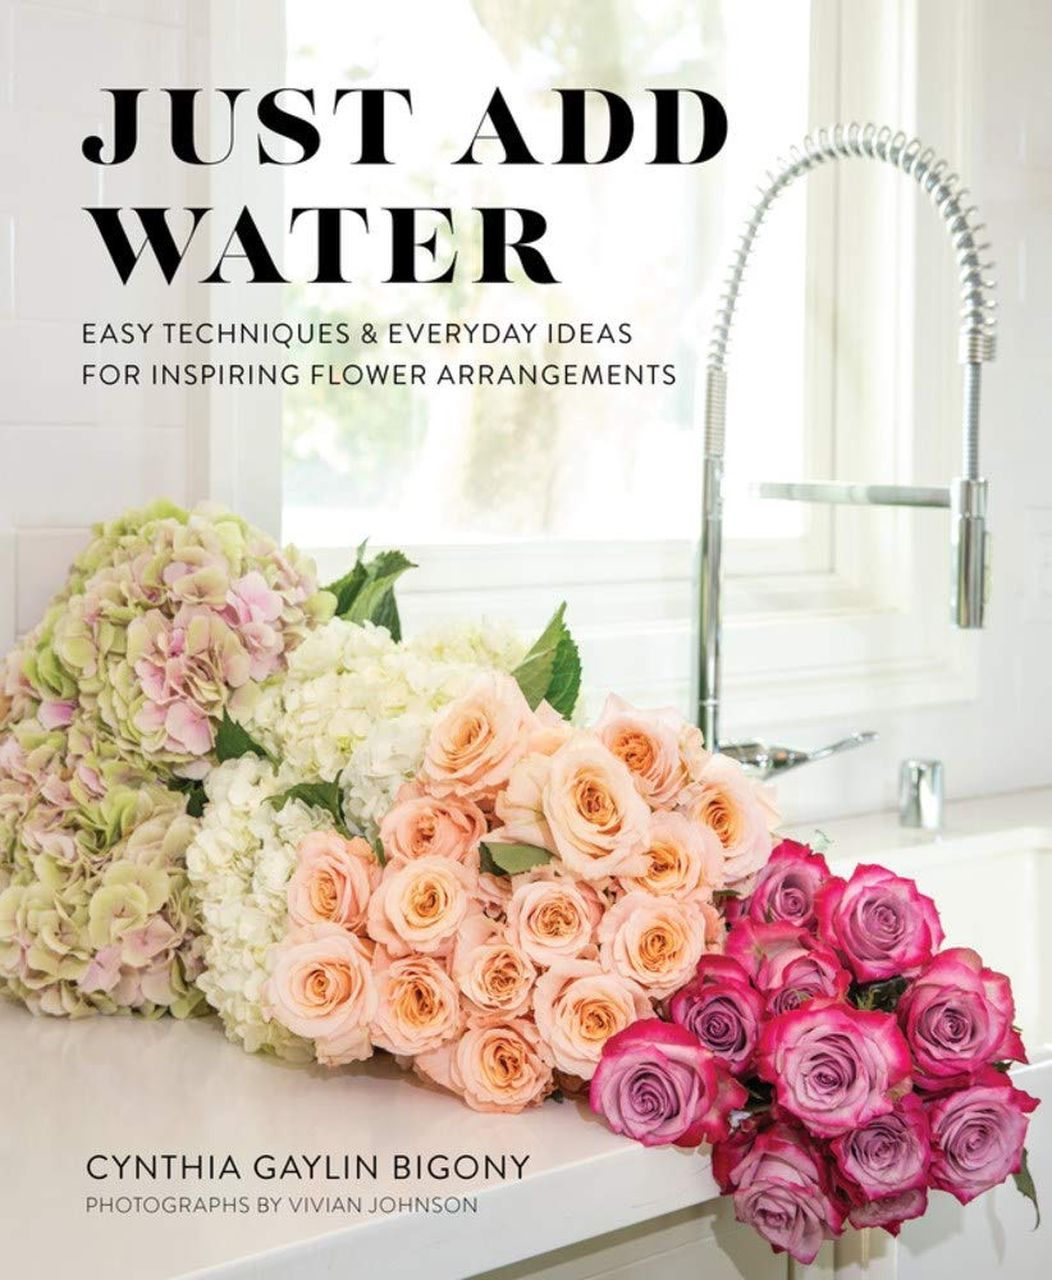 Just Add Water by Cynthia Gaylin Bigony